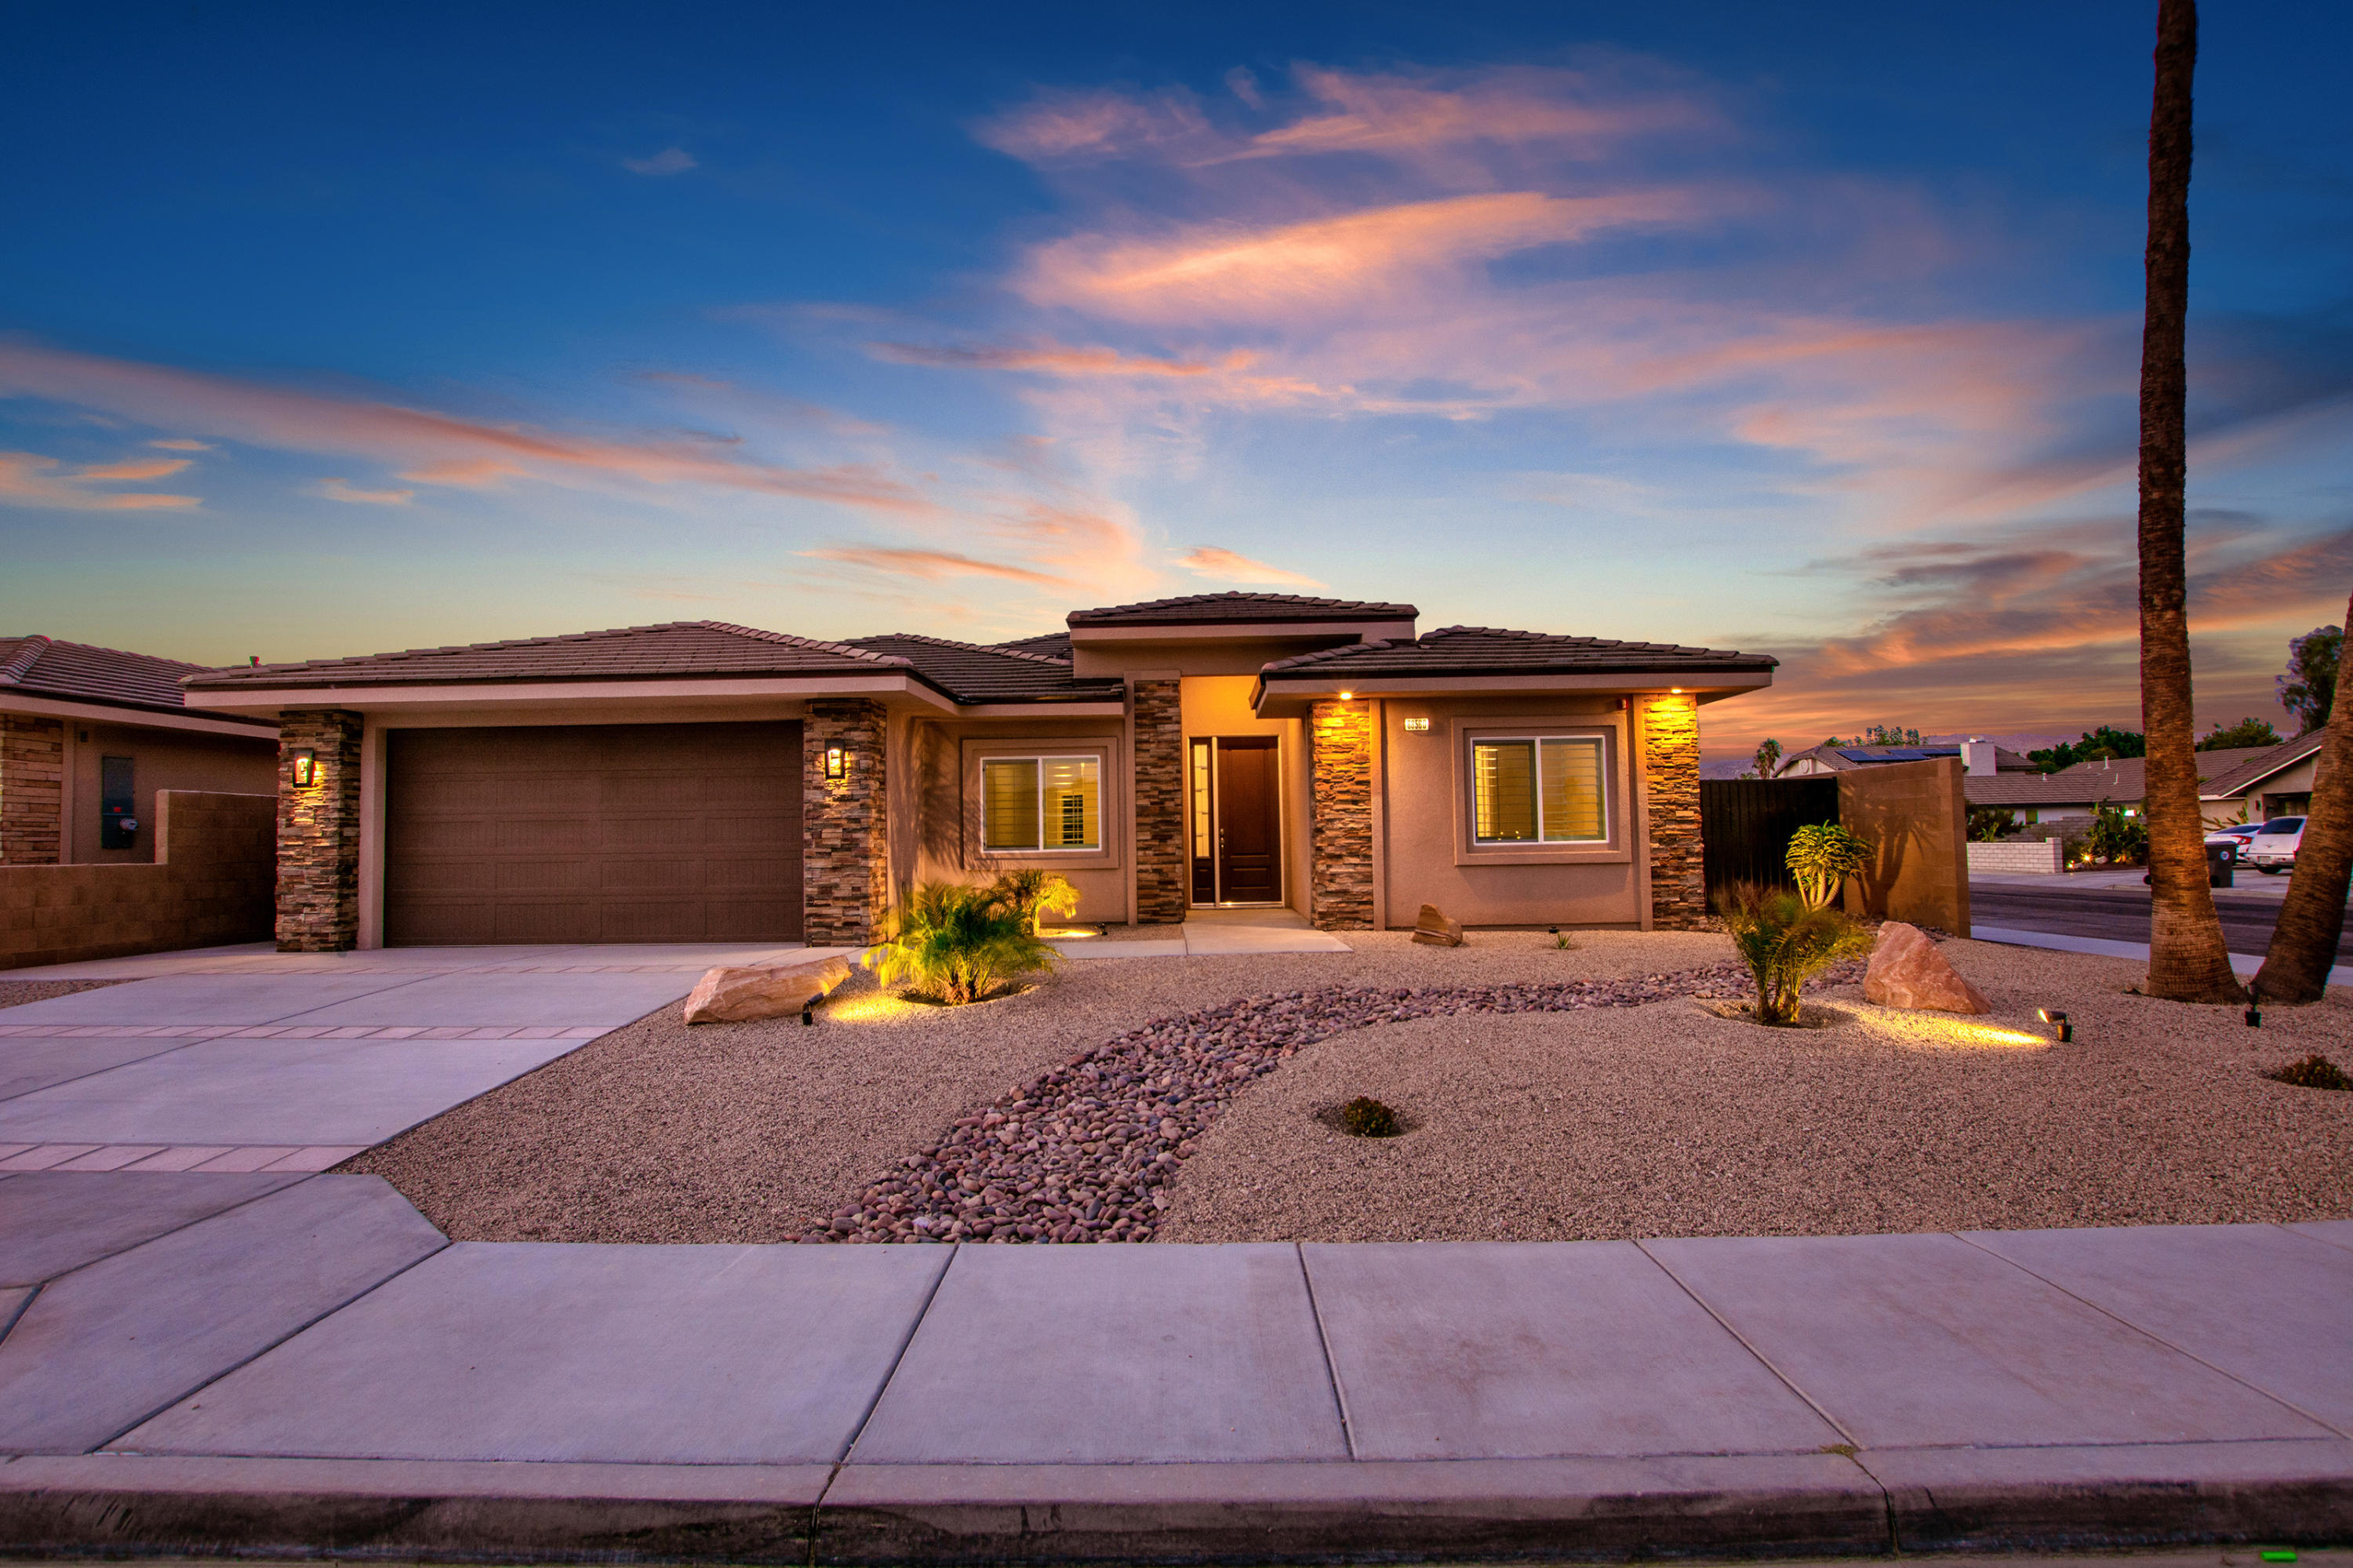 Photo of 68495 Verano Road, Cathedral City, CA 92234